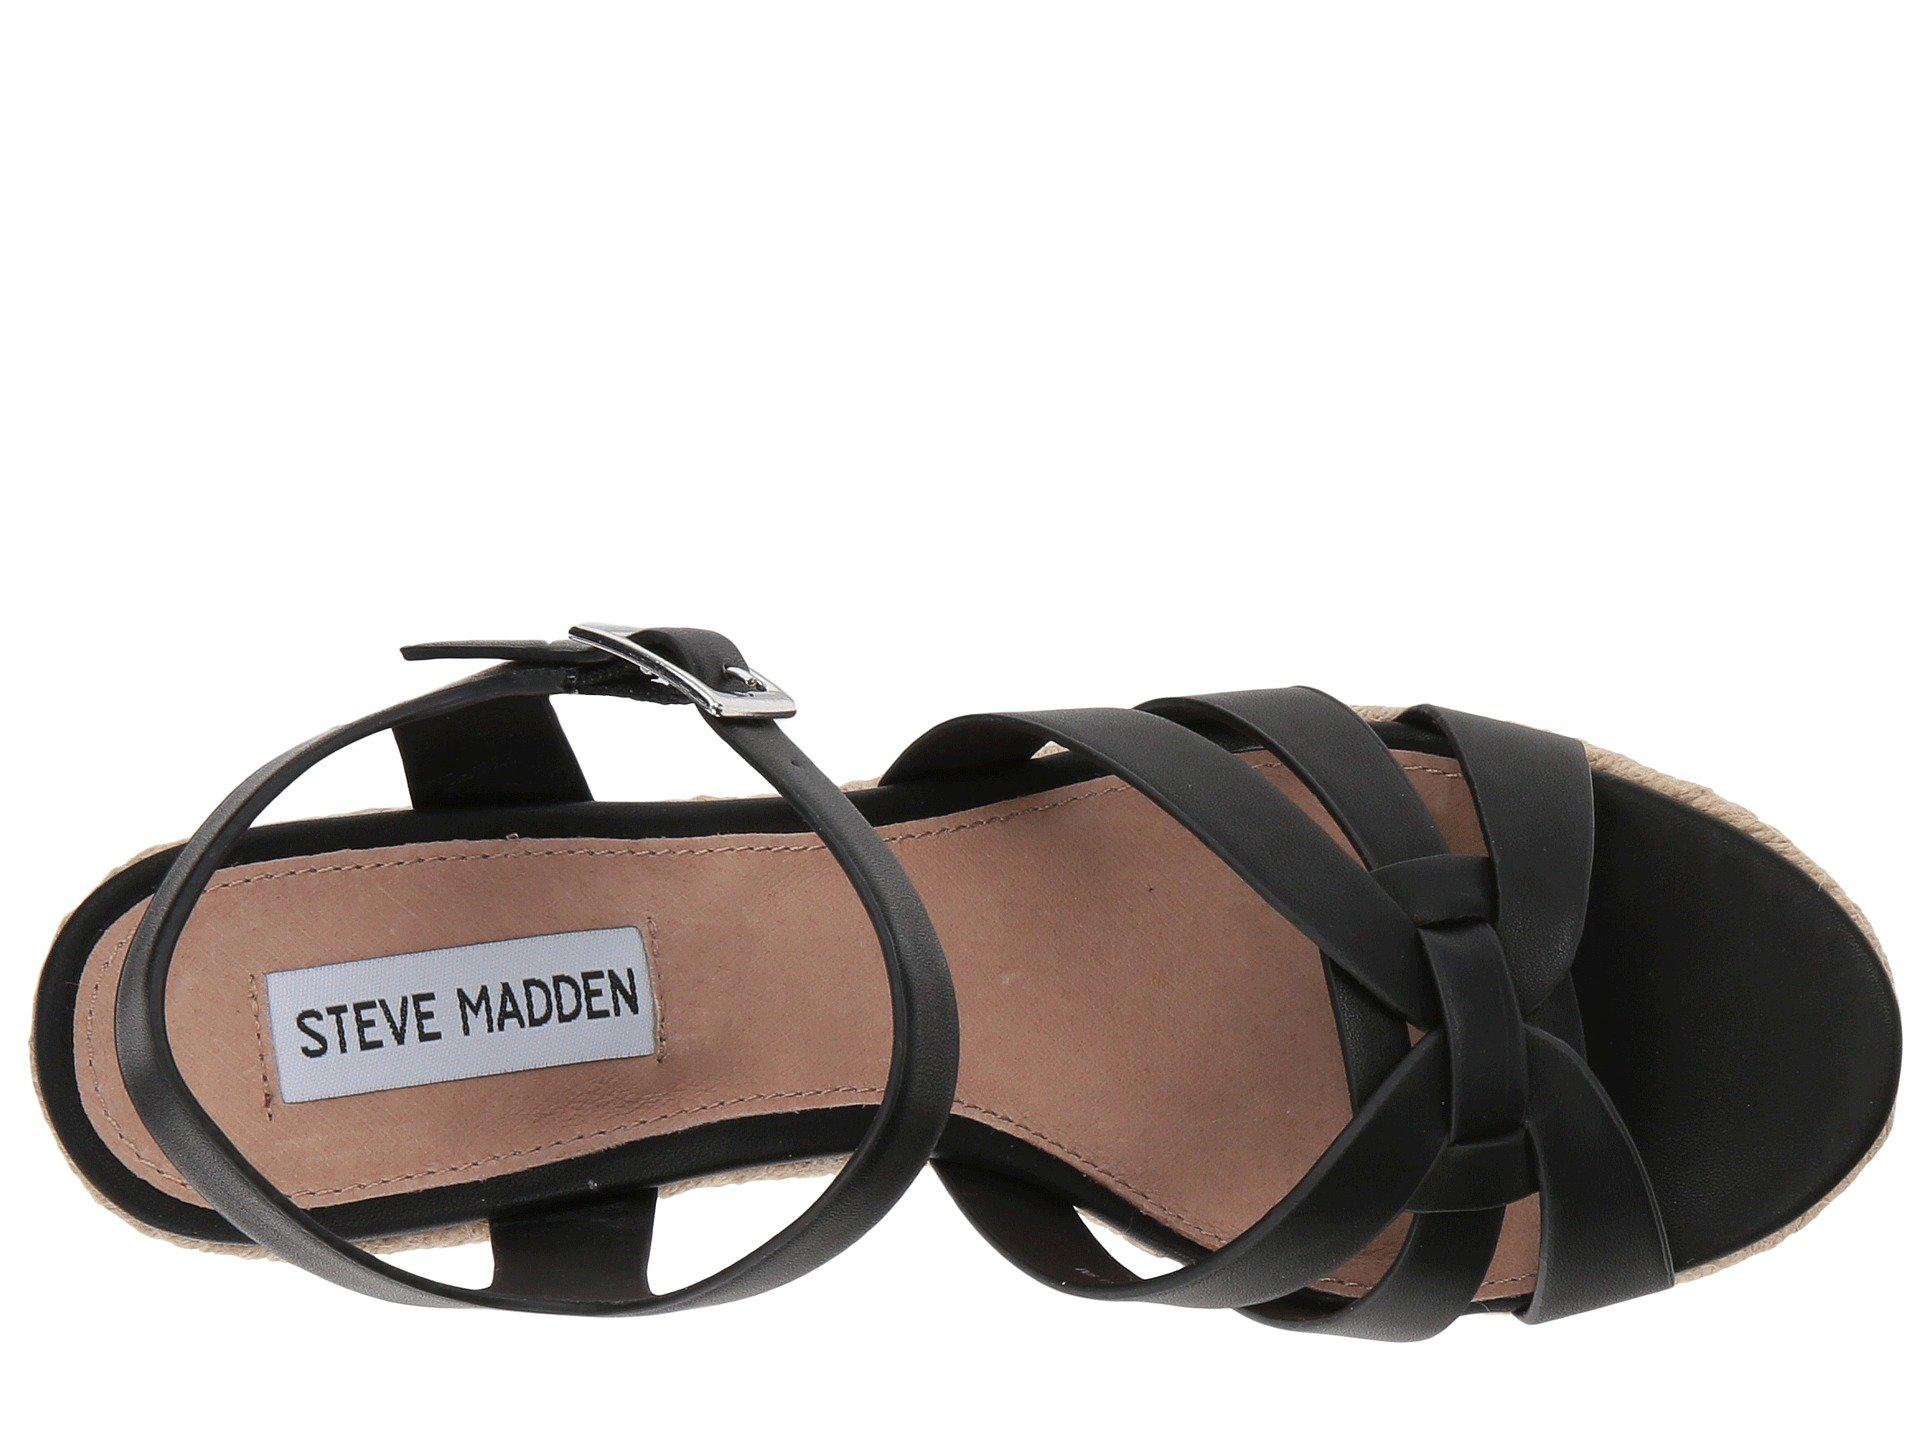 cec04bb582b Steve Madden - Black Knight Wedge Sandal - Lyst. View fullscreen